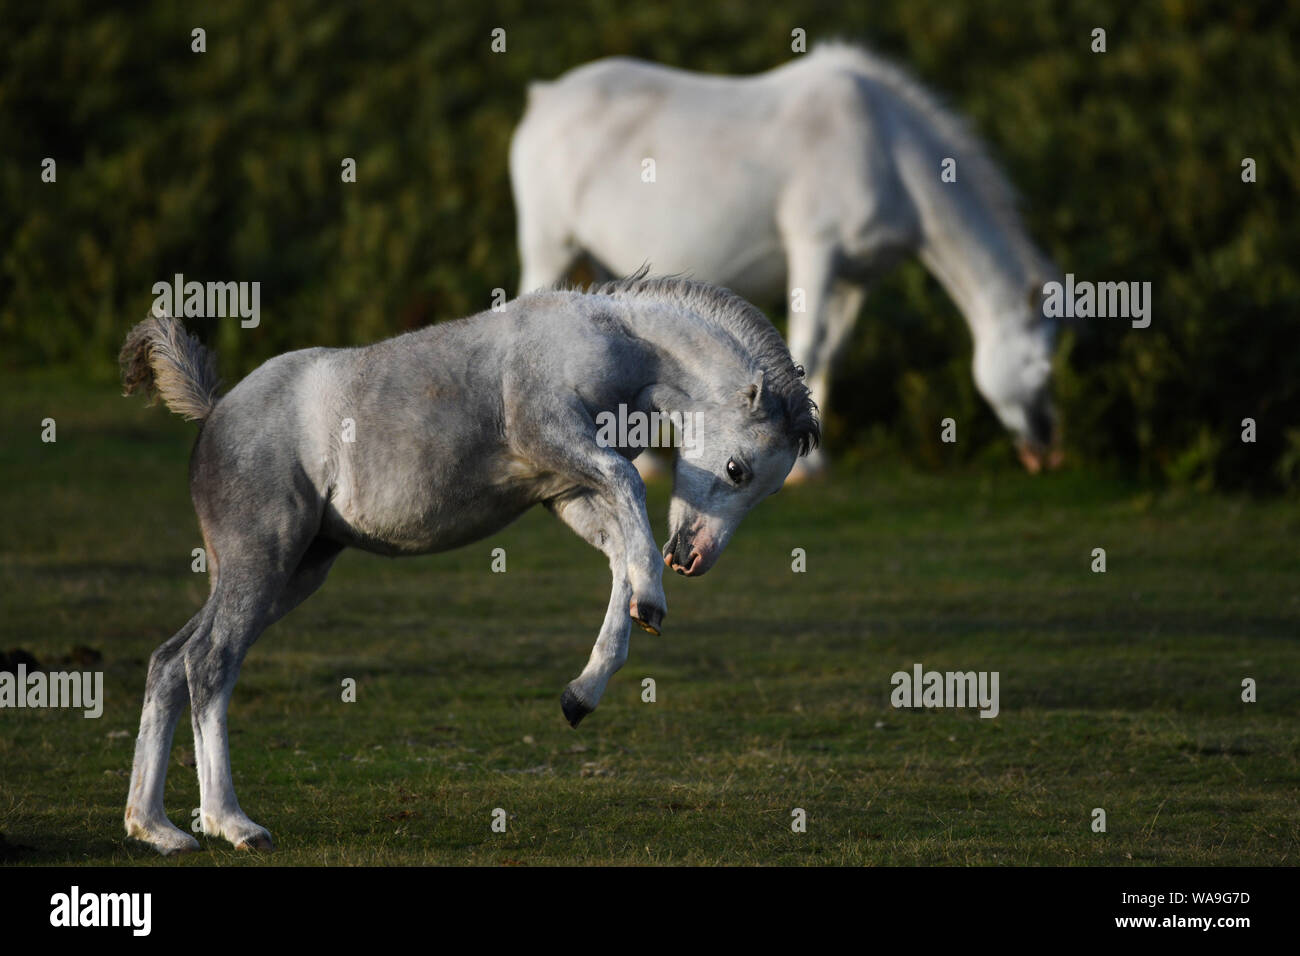 Gower Peninsular, Wales, UK. Monday 19th August 2019. Wild ponies are pictured on Gower in South Wales, as dawn breaks on the peninsular. The hardy ponies wander freely on the common land of the Gower and are an everyday sight in the summer months at the hight of the grazing season. Credit : Robert Meelen/Alamy Live News. Stock Photo